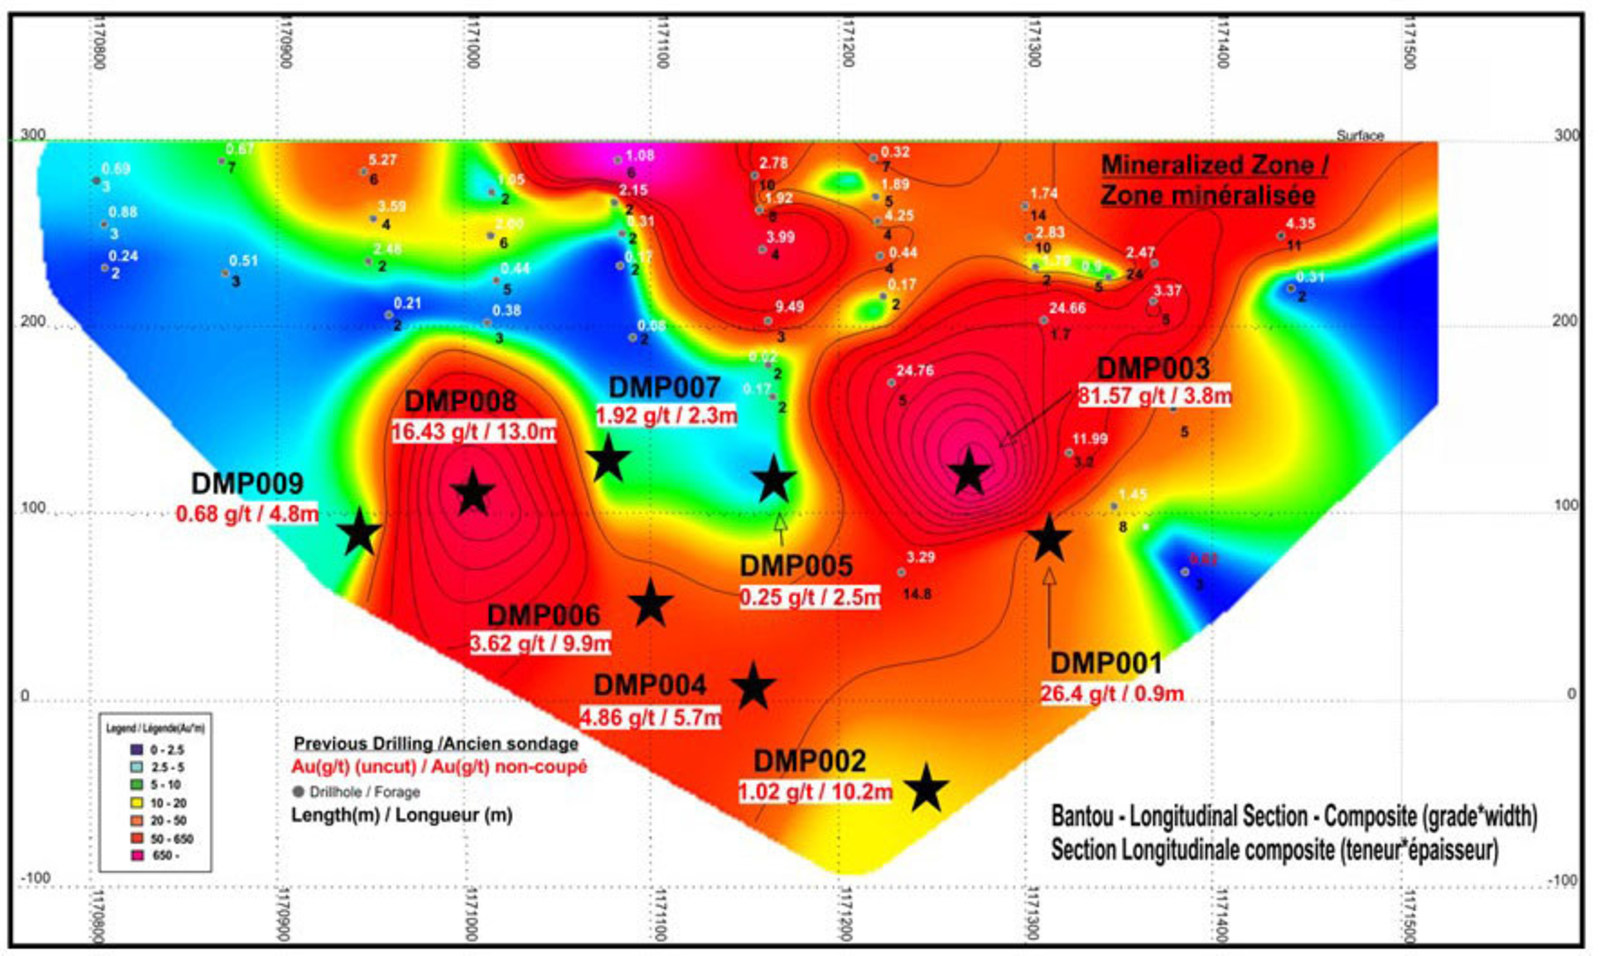 Figure 2. Bantou Zone – Longitudinal Section